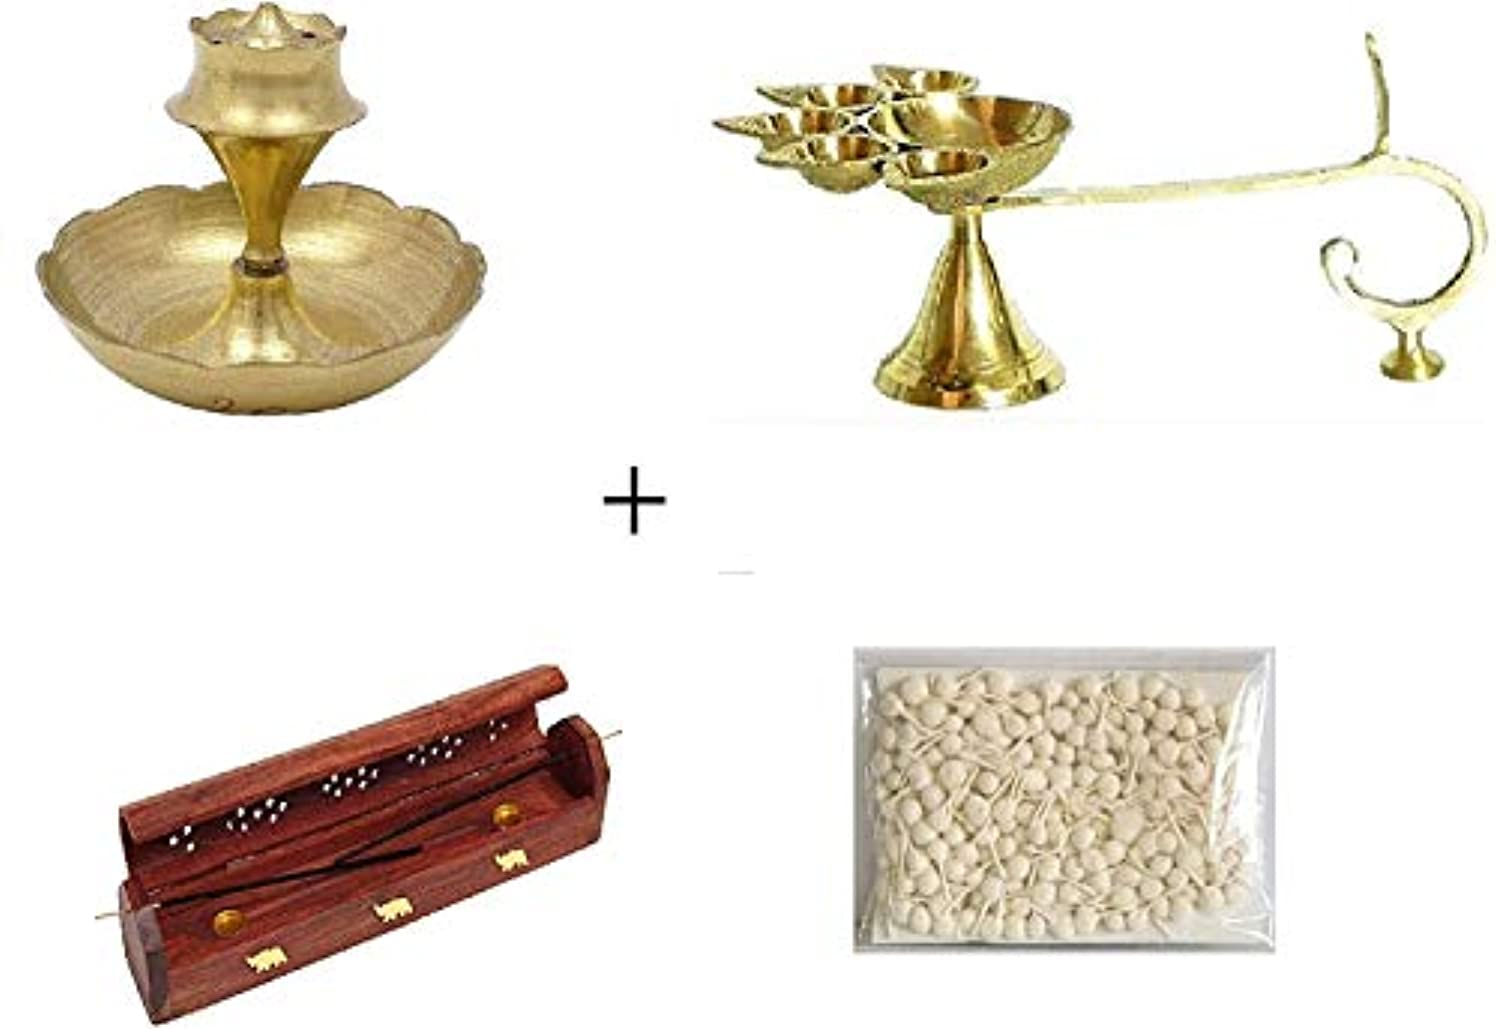 評決モンクポータブルCombo of Brass Panchaarti Diya,Brass Incense Stick Holder, Wooden Incense Stick Storage With Cotton Round Wick Free for Home,Office